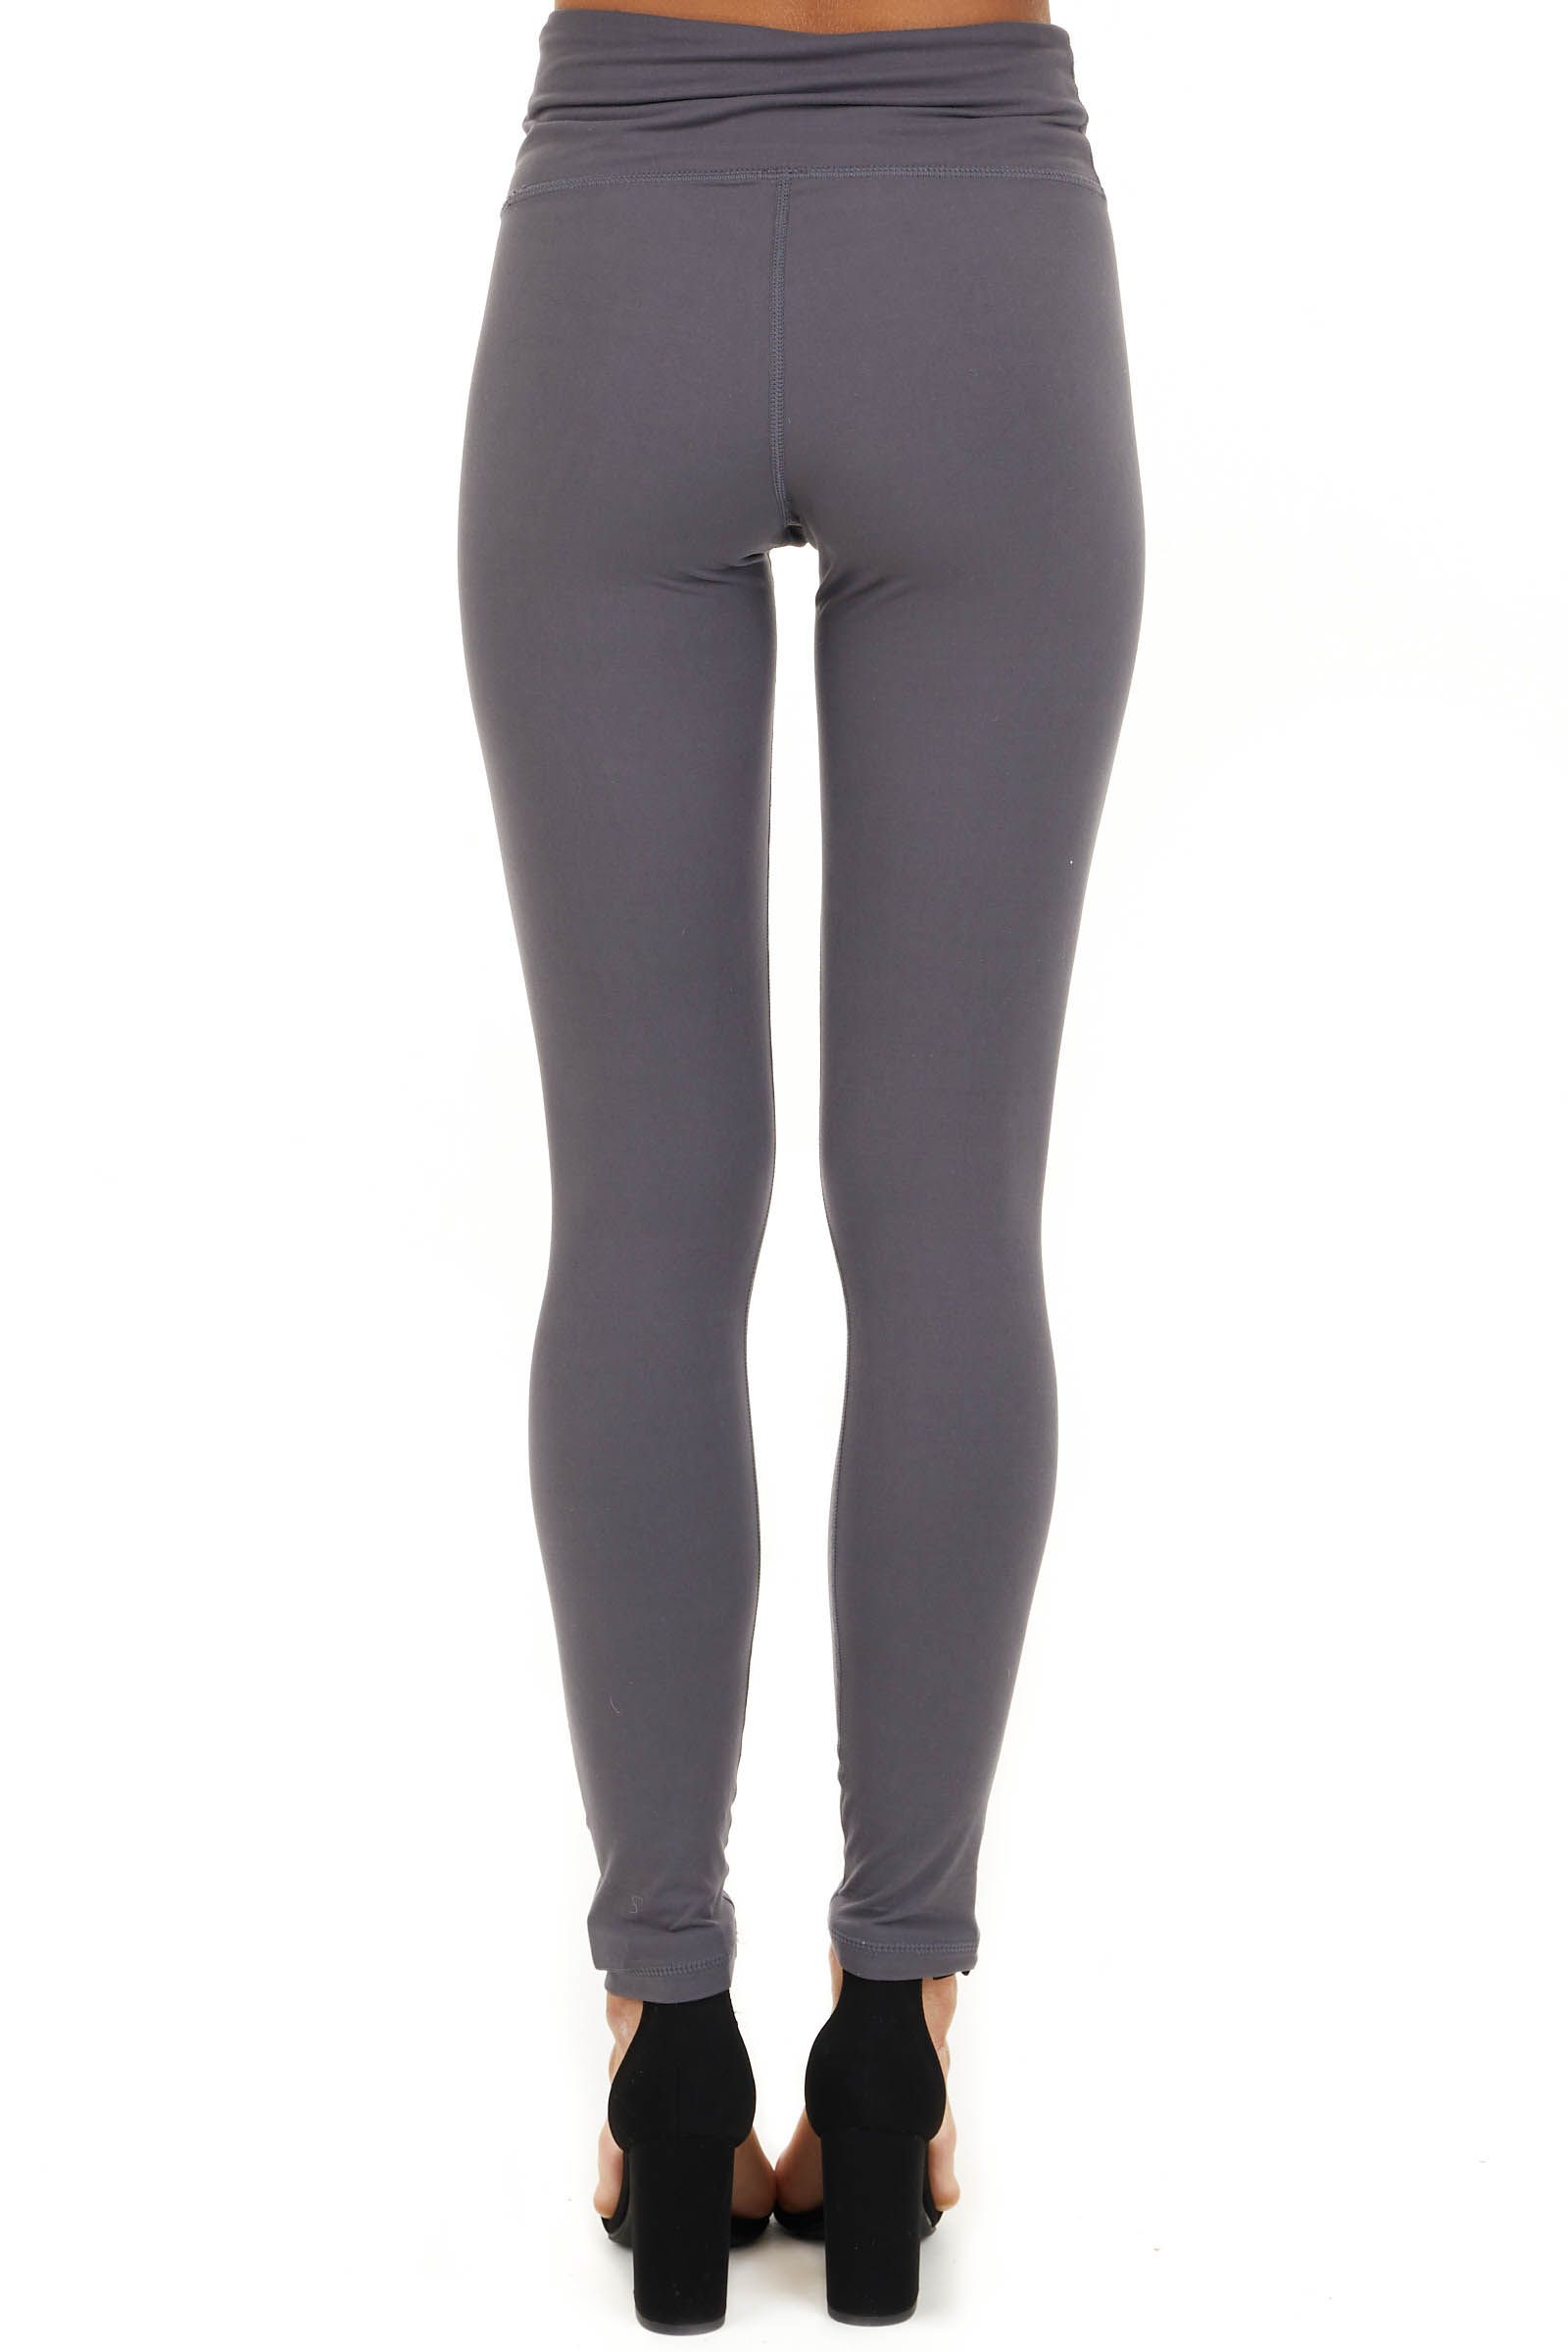 Charcoal Solid Leggings with Laser Cutout Details back view